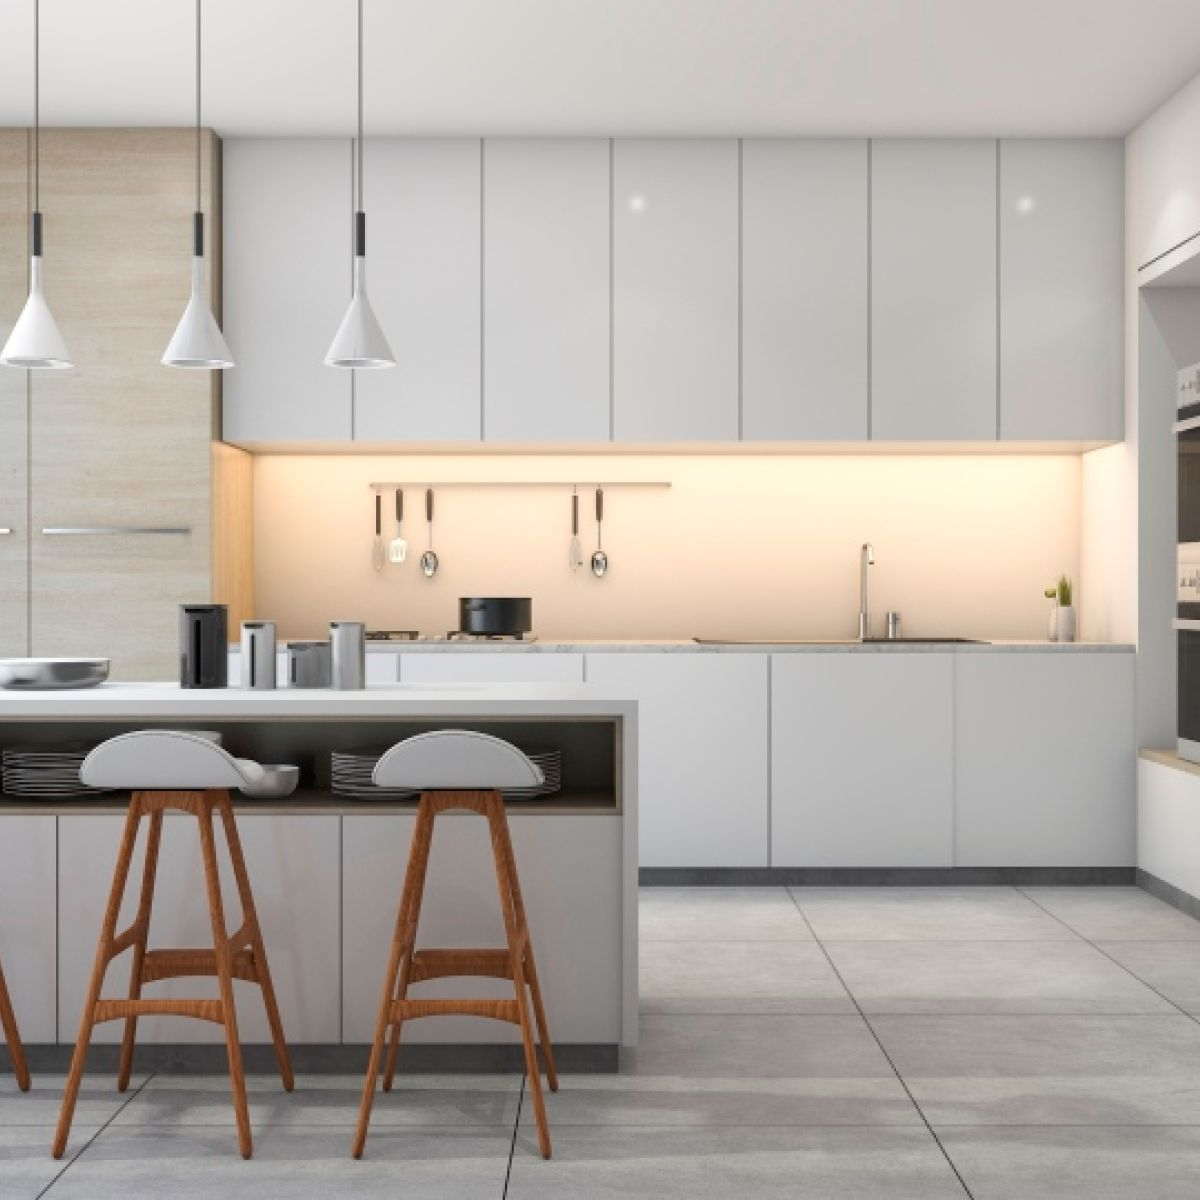 Trading Up Counting The Cost Of Renovating A Kitchen